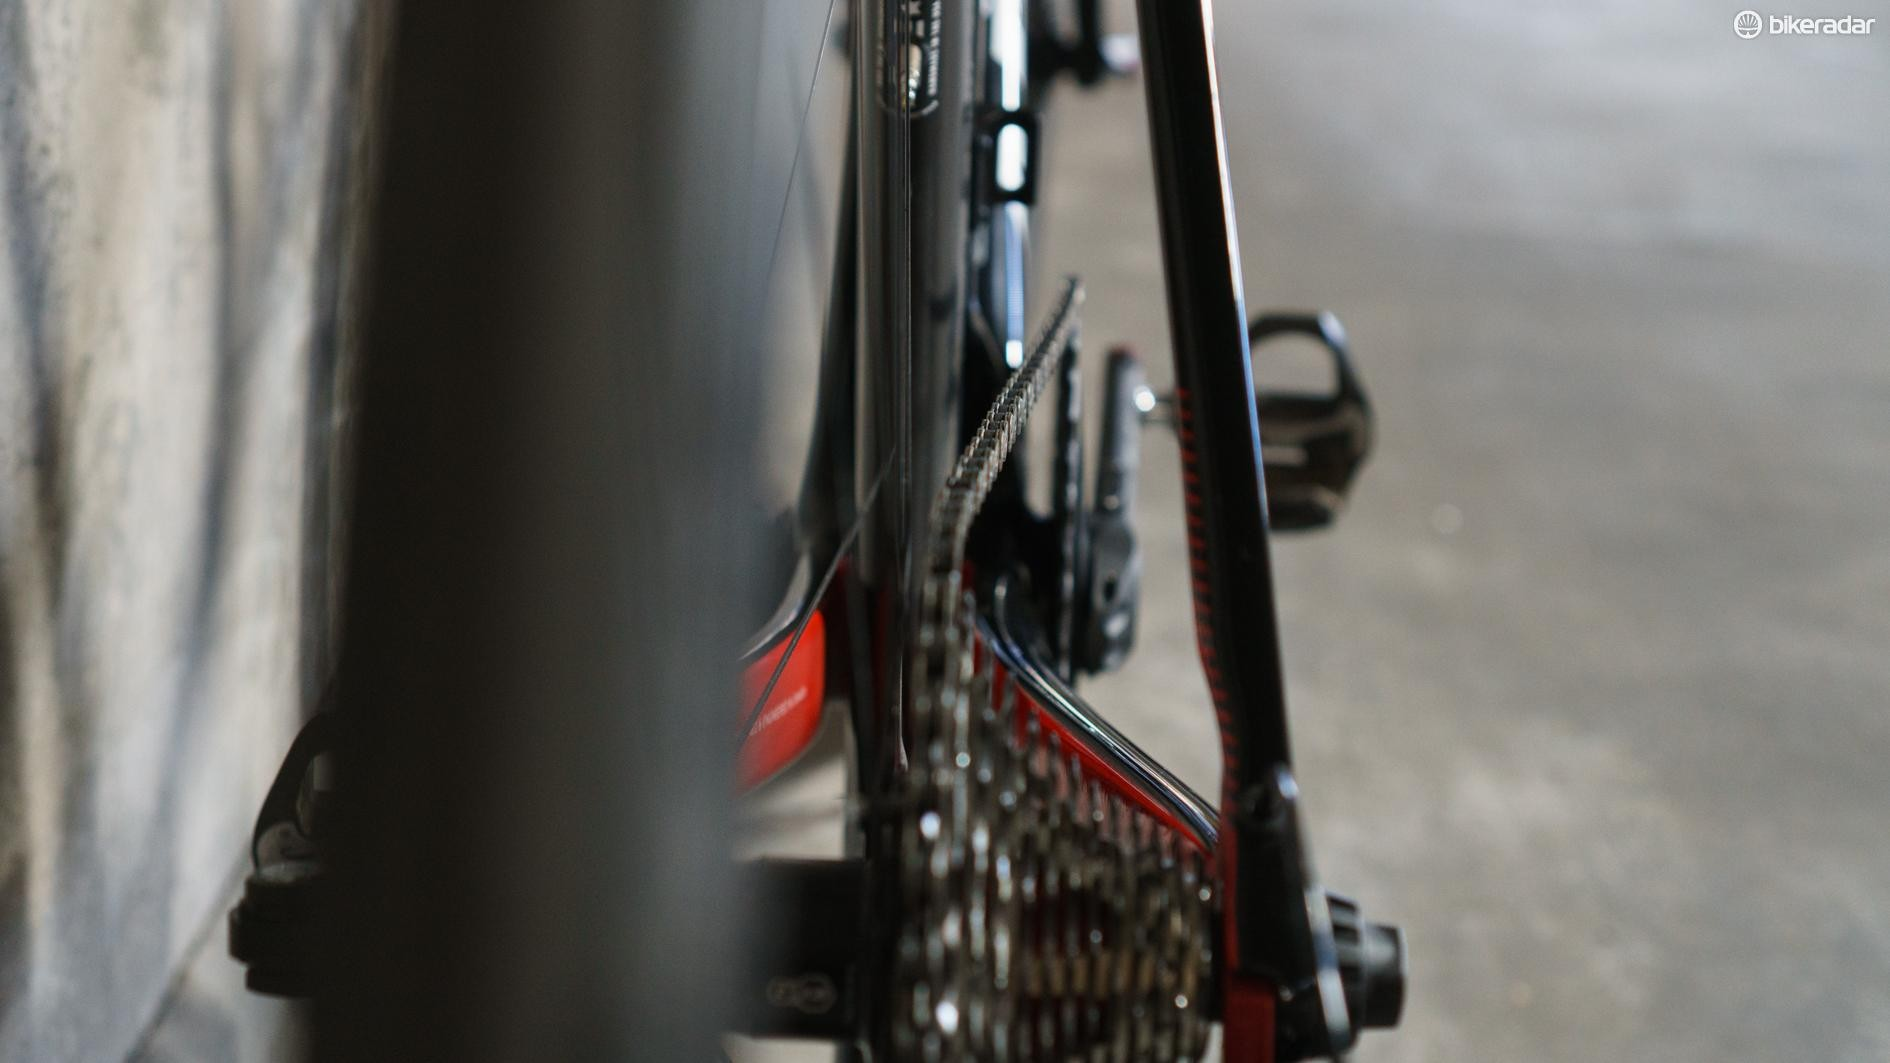 The chain is at a wild angle at the extreme ends of the cassette